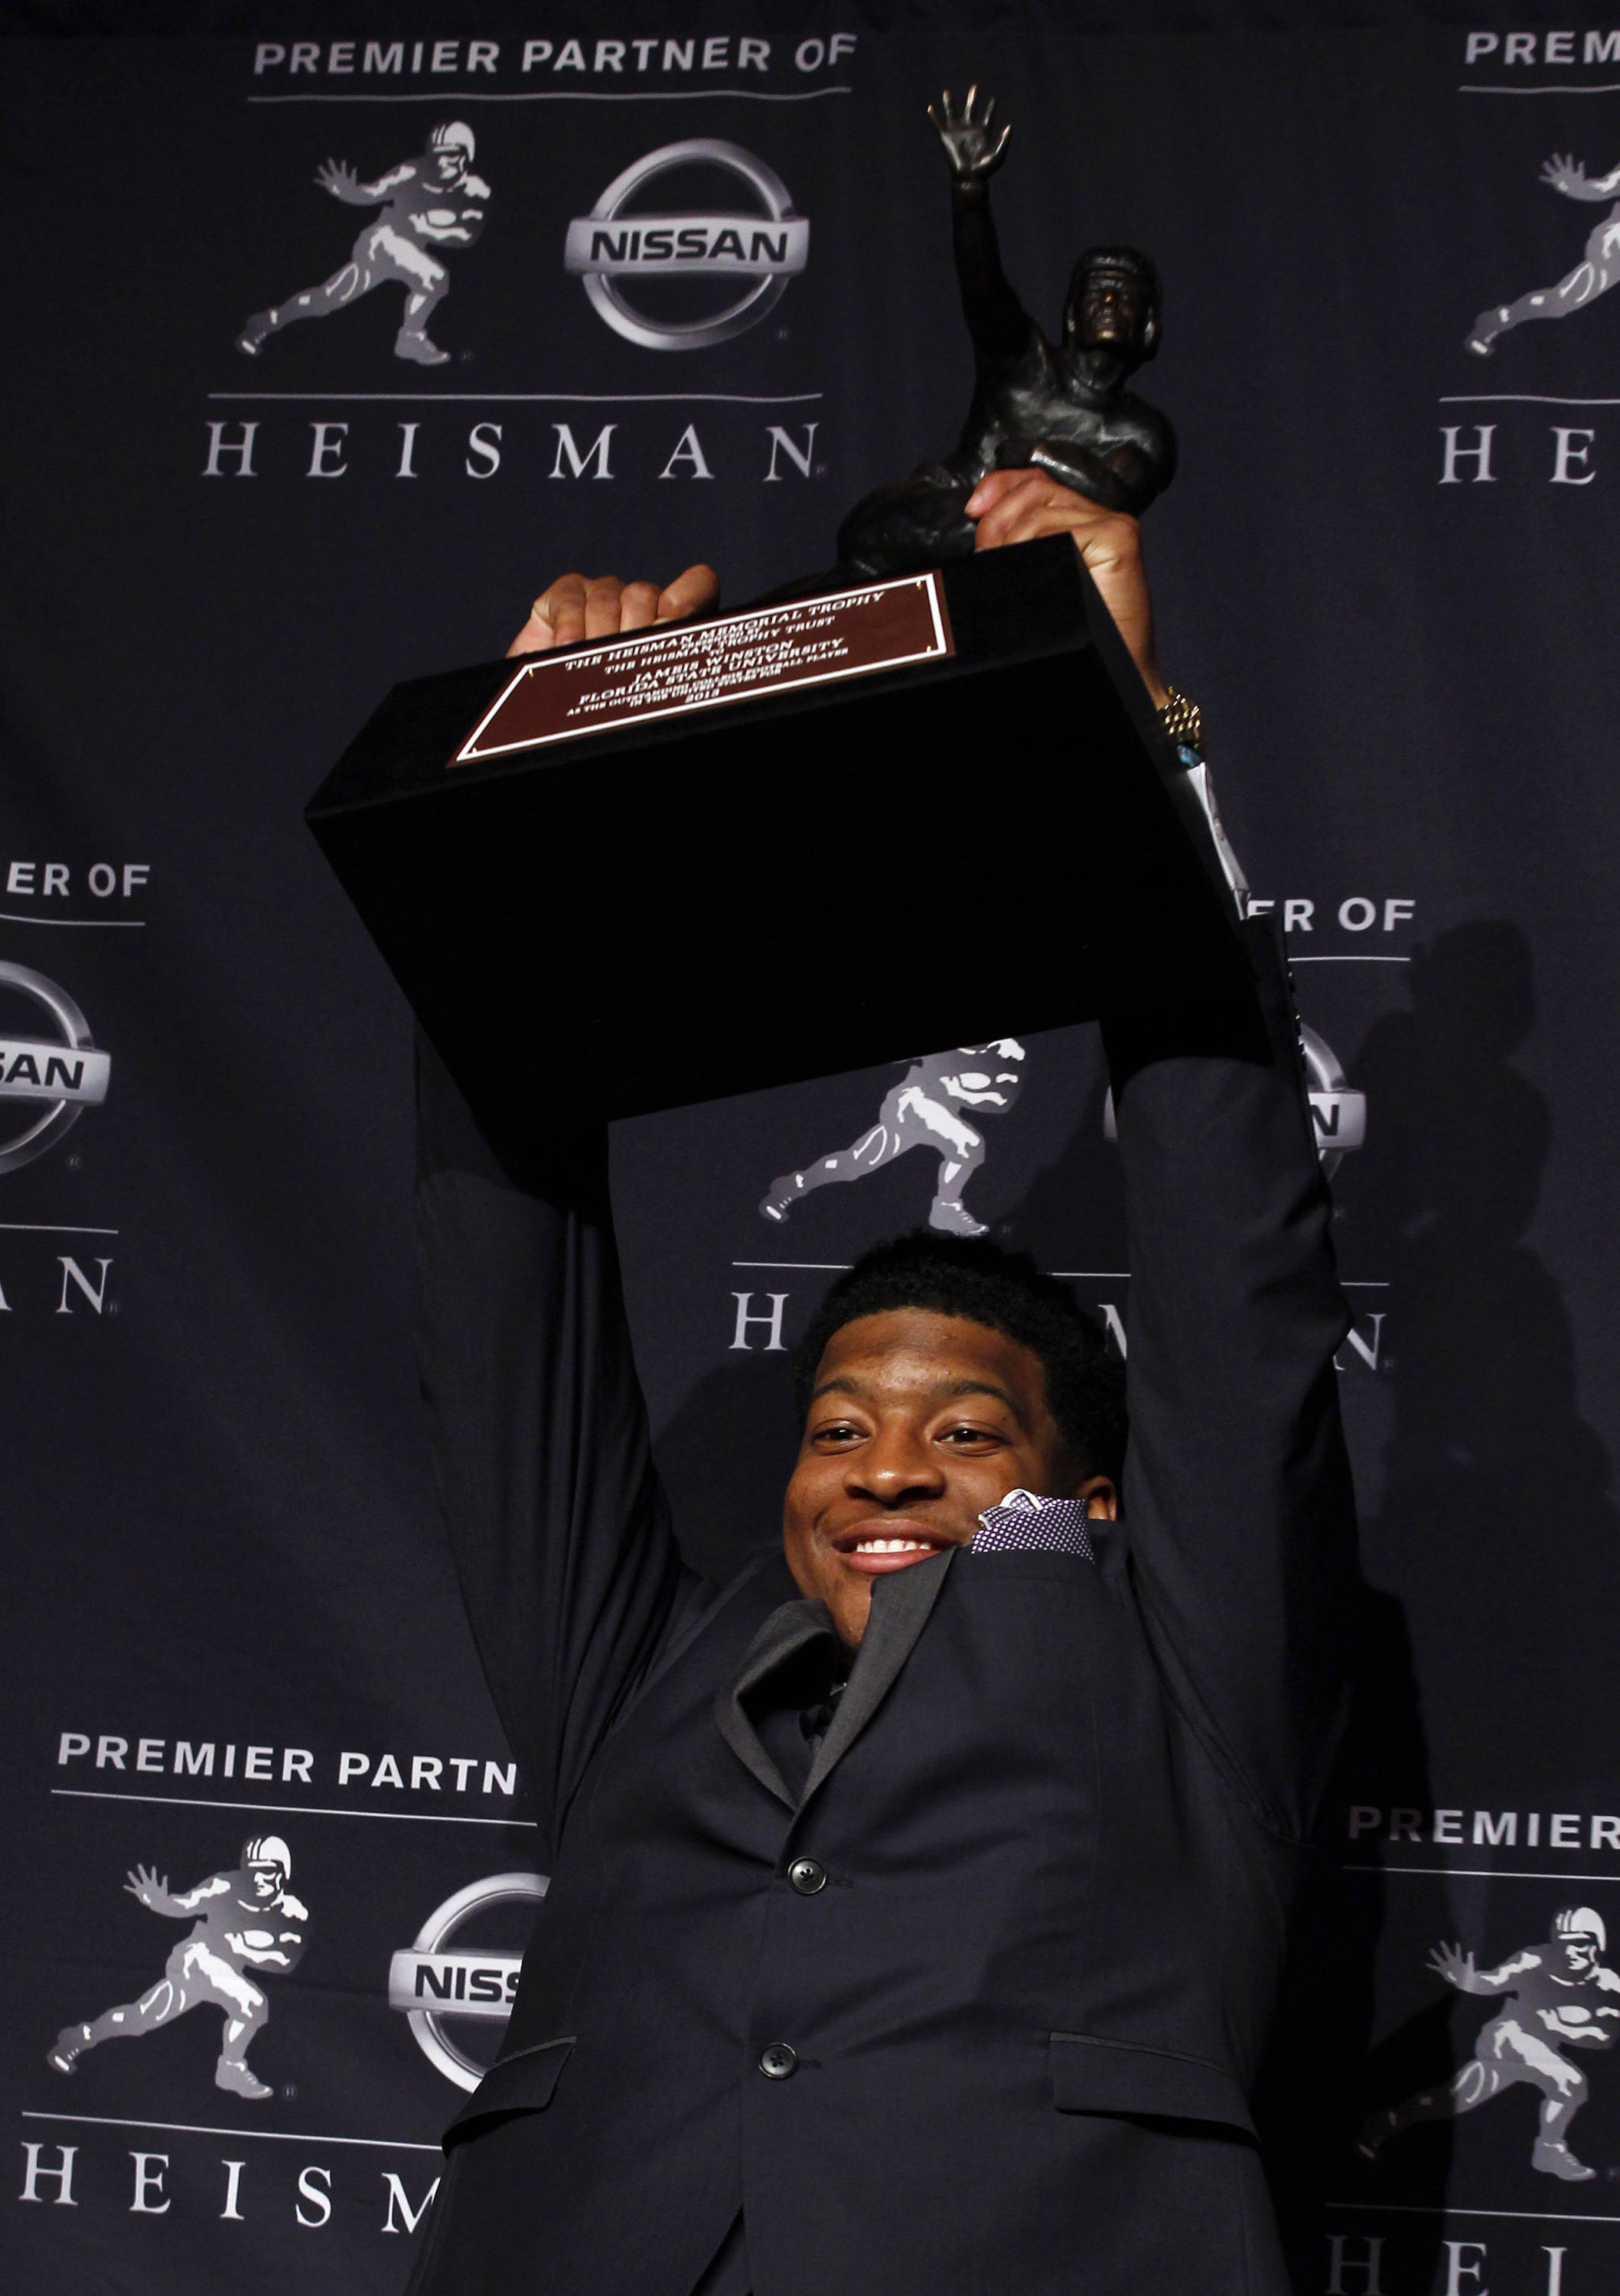 Dec 14, 2013; New York, NY, USA; Seminoles quarterback Jameis Winston poses for a photo after being awarded the 2013 Heisman Trophy at the Marriott Marquis in New York City. Adam Hunger-USA TODAY Sports